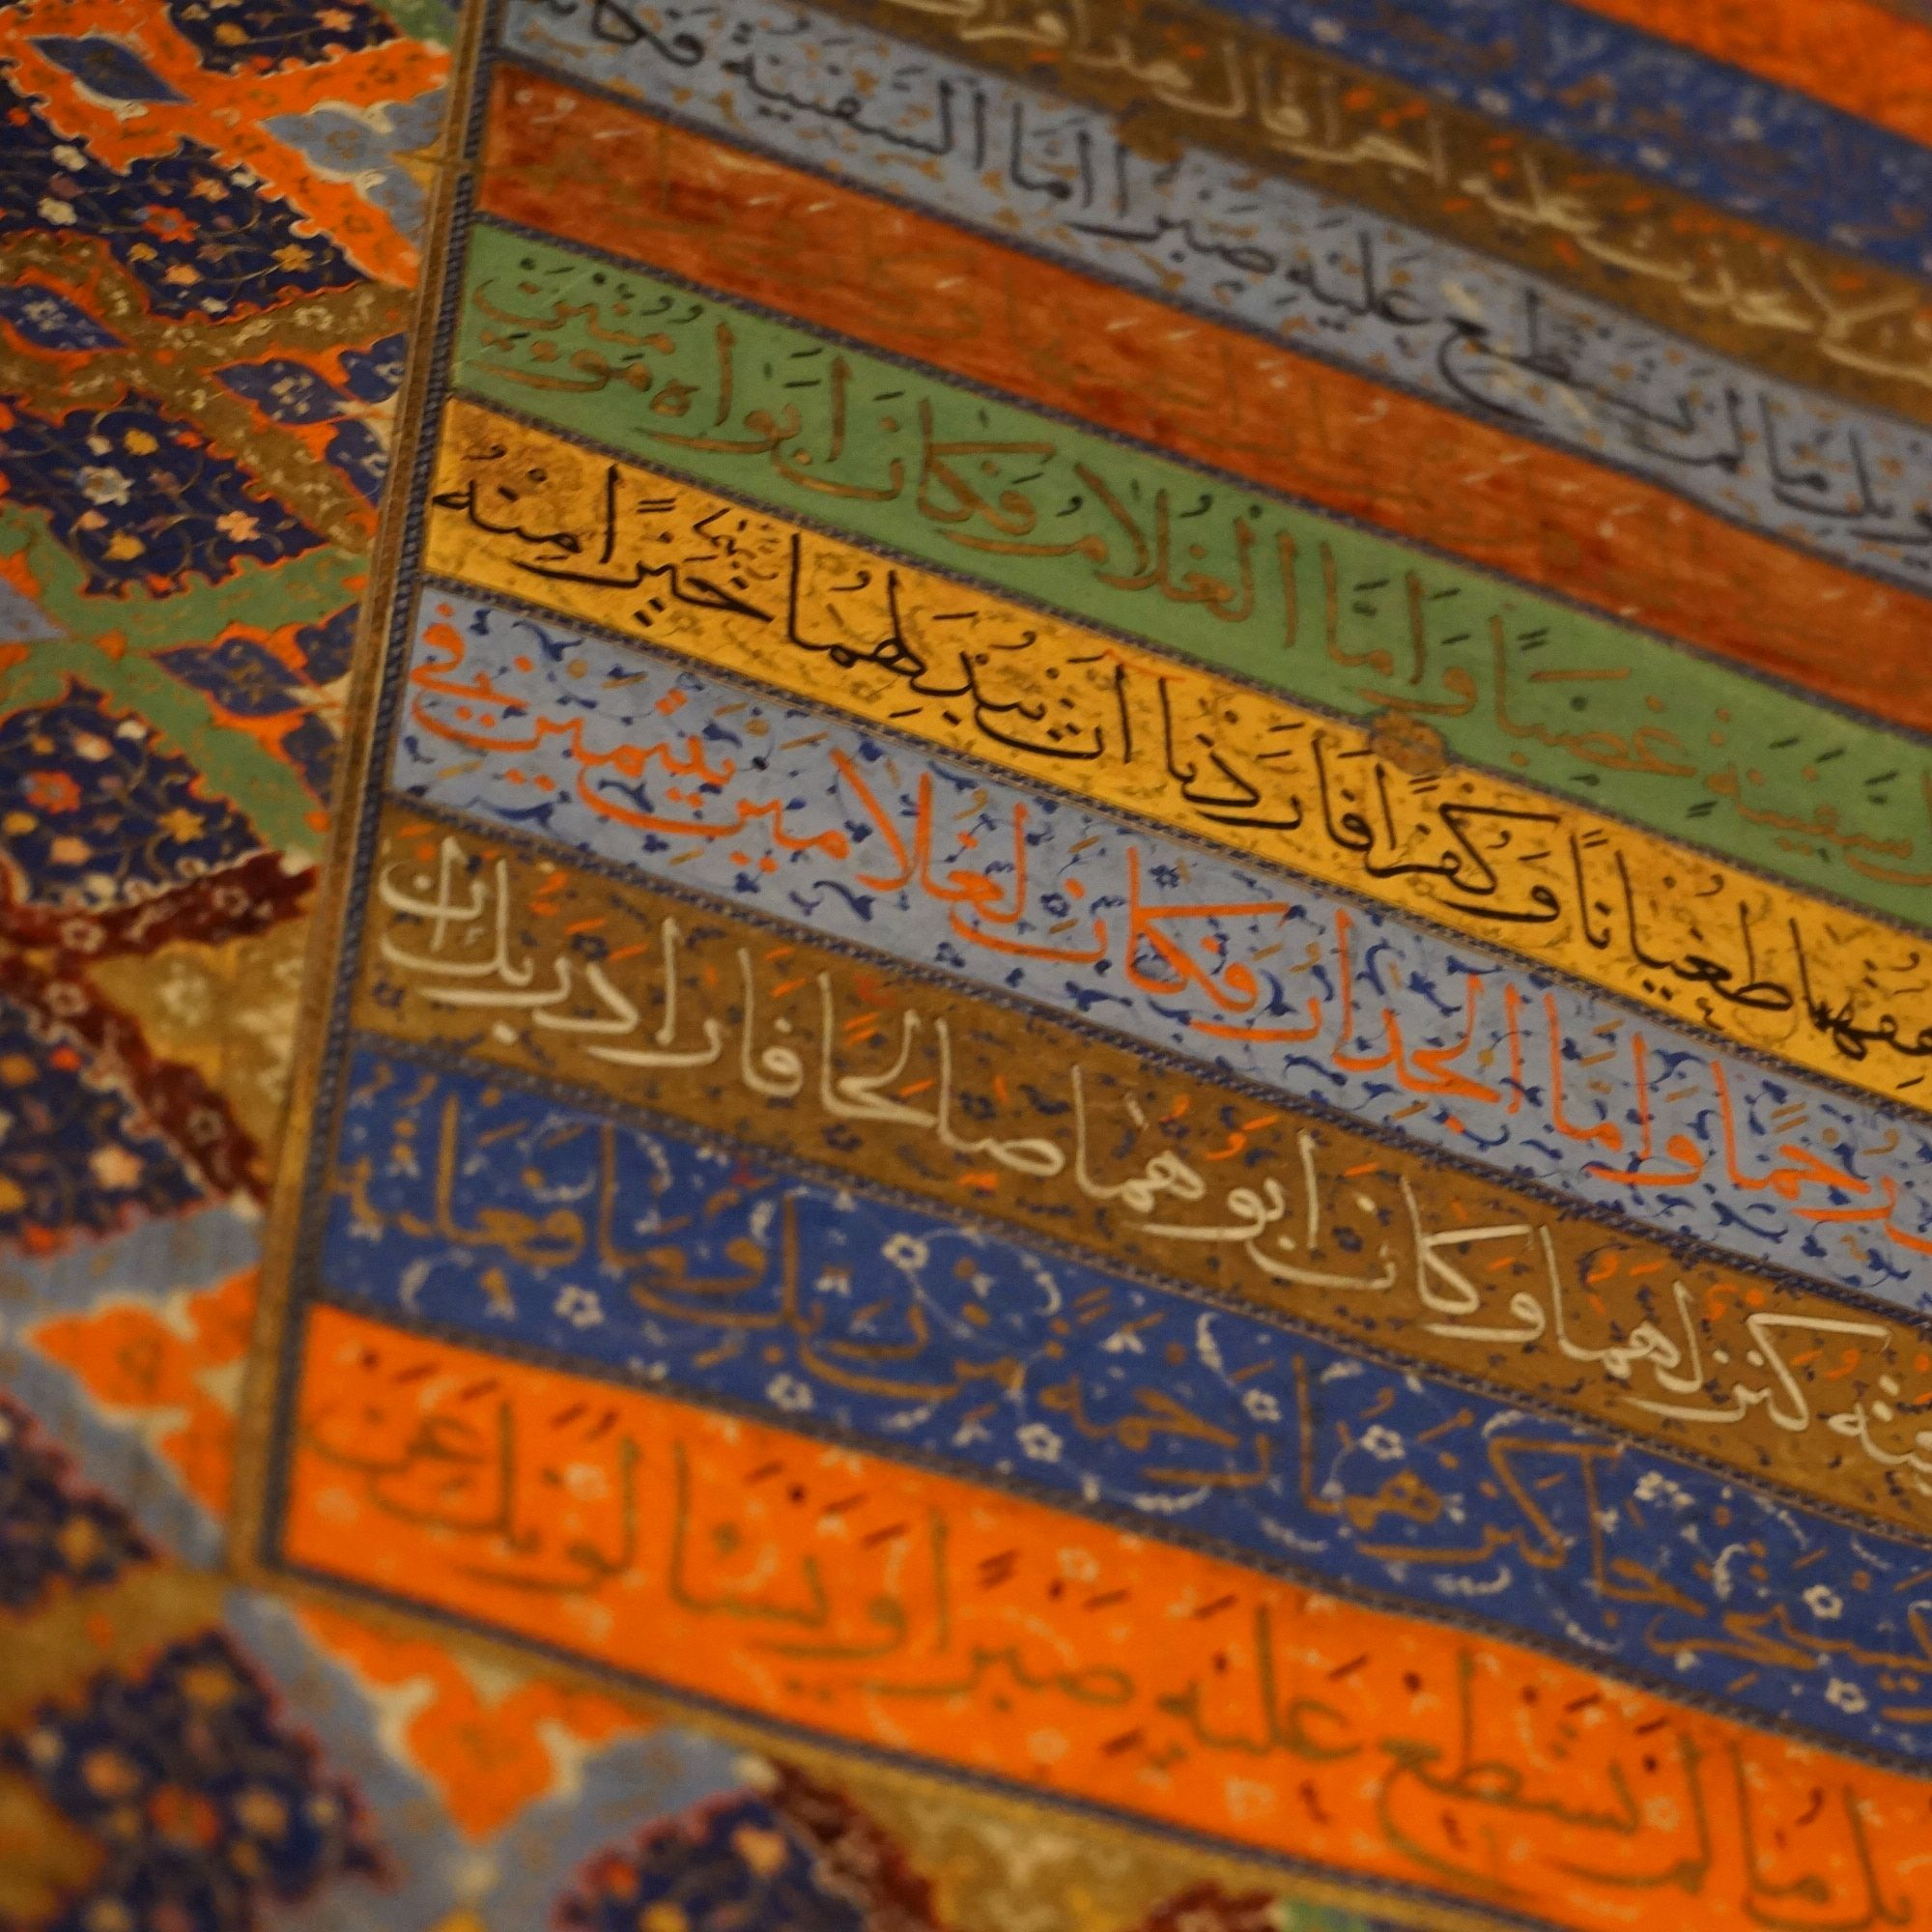 Exploring the Art of the Qur'an | Massumeh Farhad & Simon Rettig